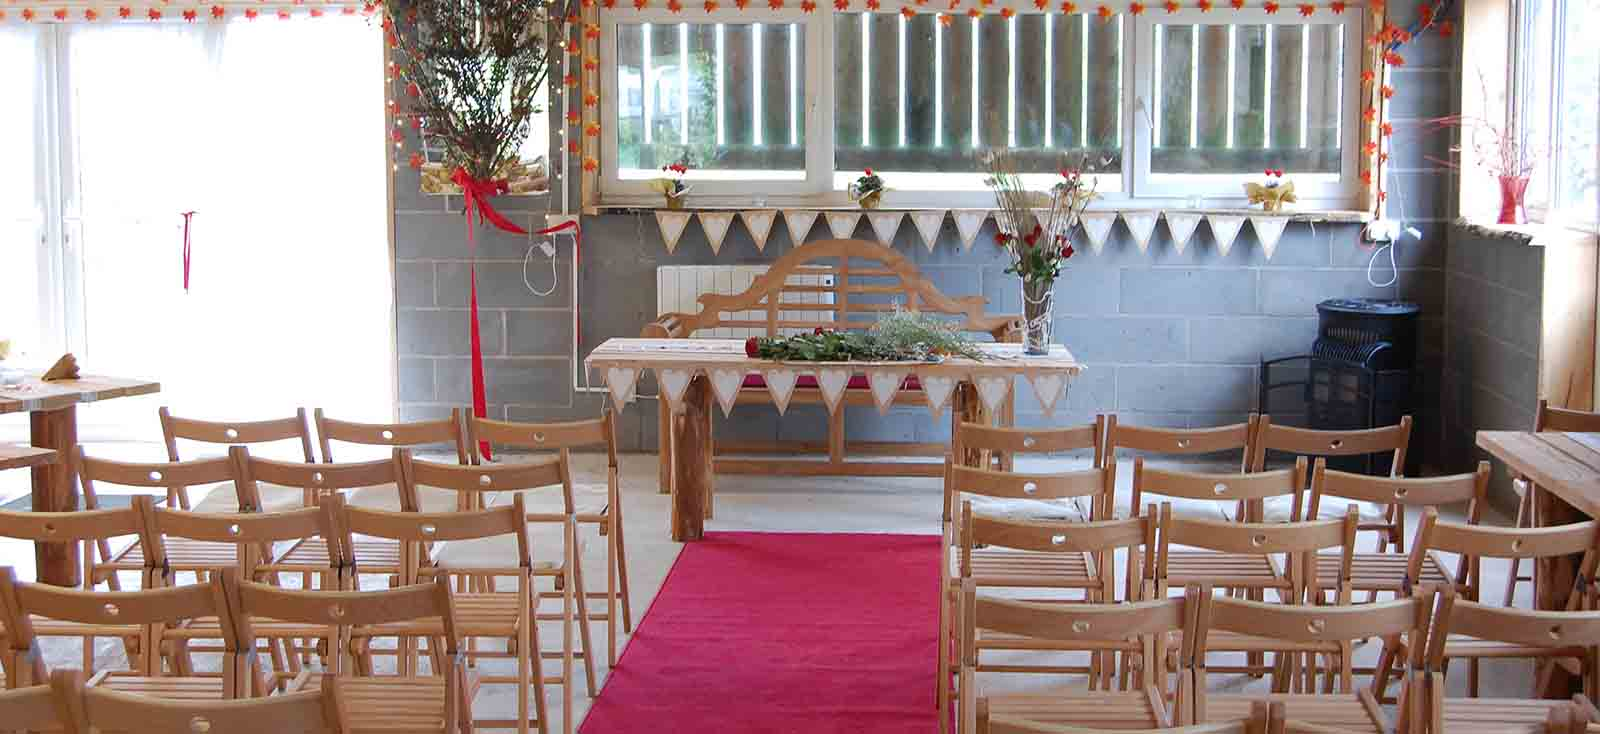 inside the wedding venue